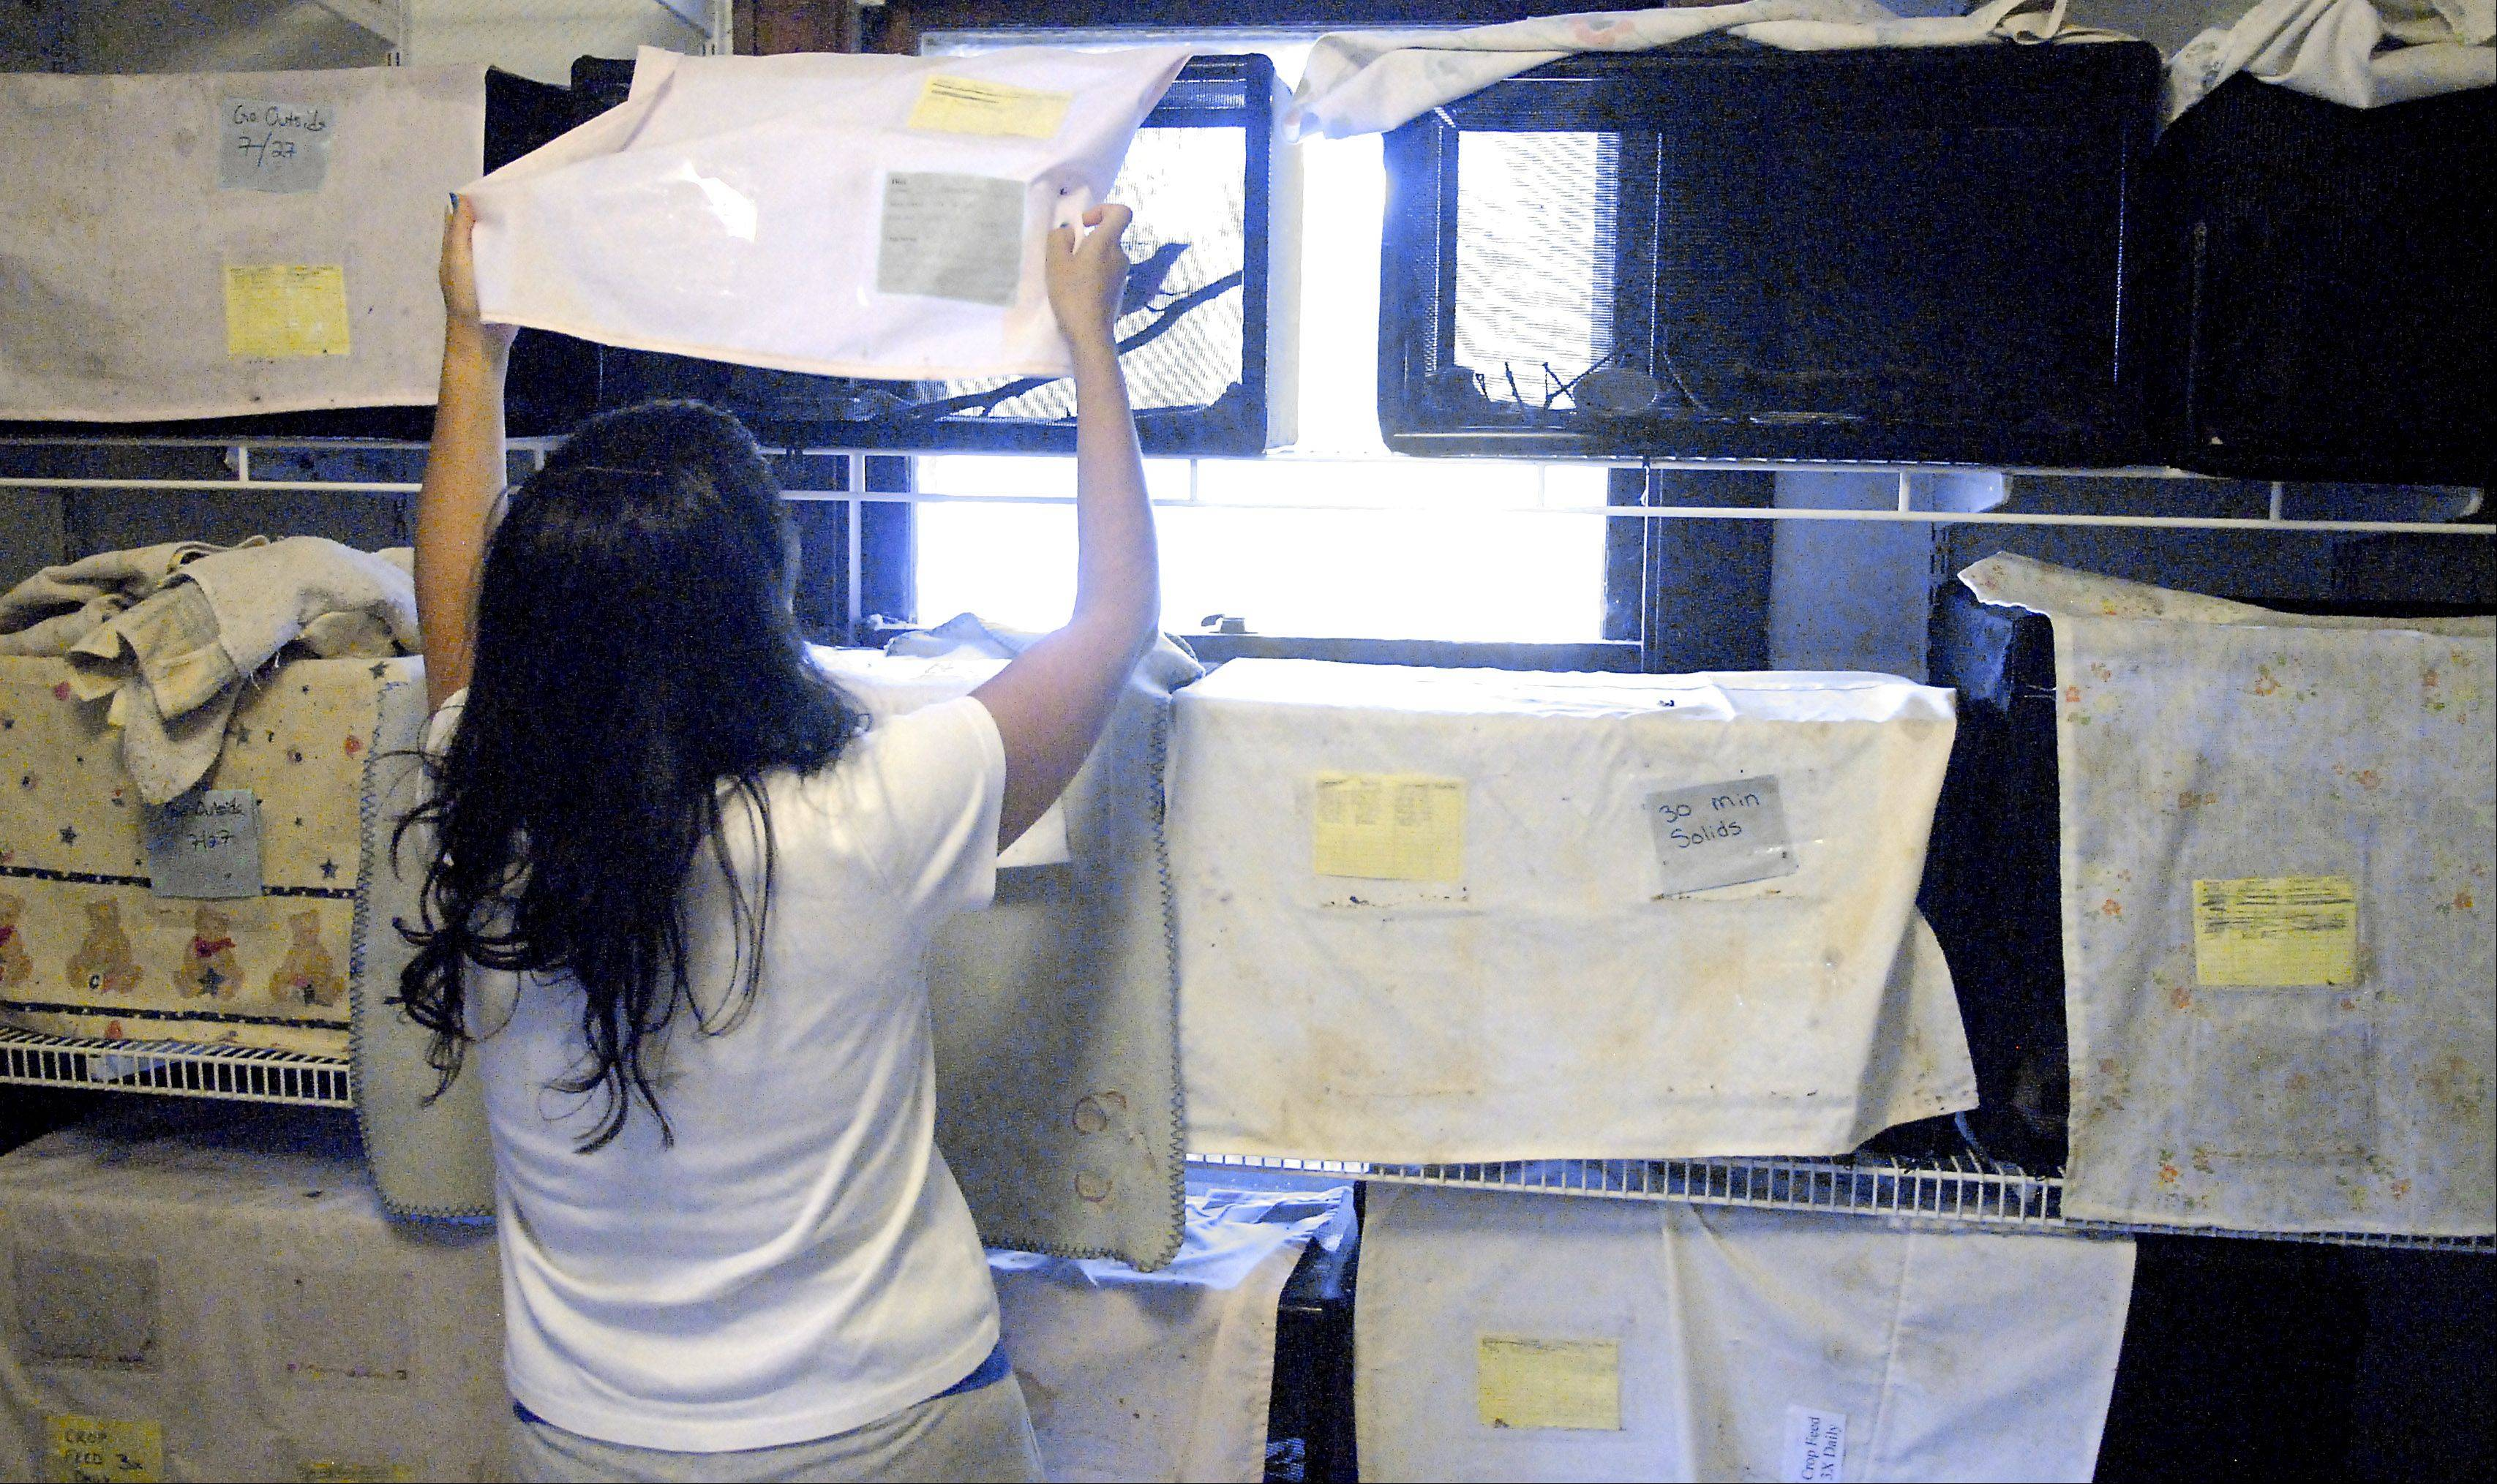 Fox Valley Wildlife Center volunteer Larissa DeSmet of Gilberts uncovers a birdcage for cleaning. All the bird cages and infant mammals located inside have covers over the front of their cages to help keep them calm. DeSmet has been a volunteer since the spring.